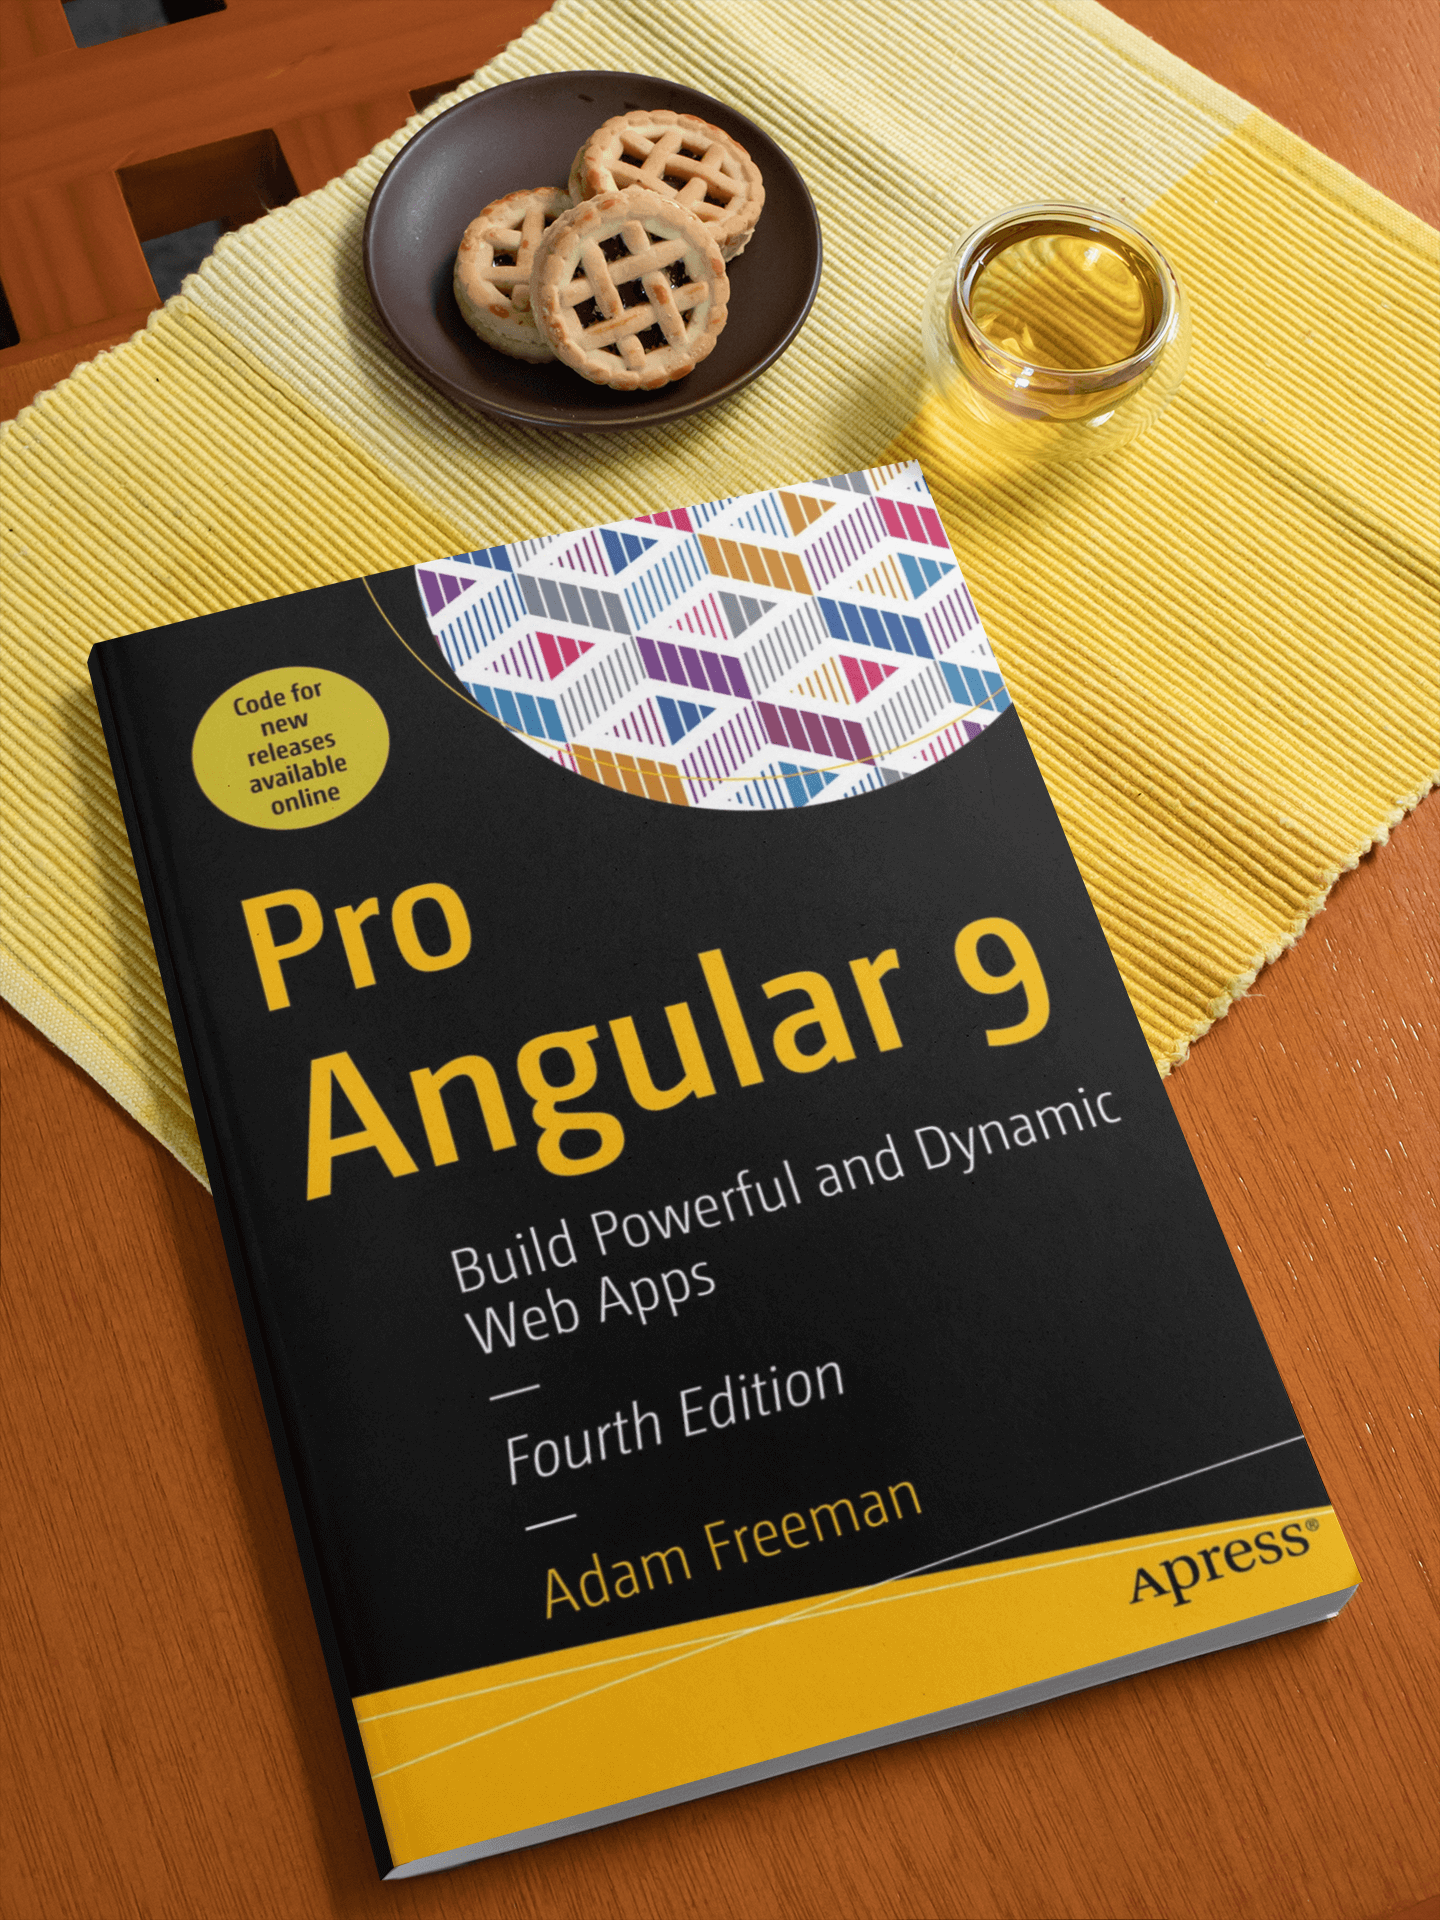 Pro Angular 9  is a June 2020 release that teaches cutting-edge AngularJS concepts in Angular 9 and Angular 10.